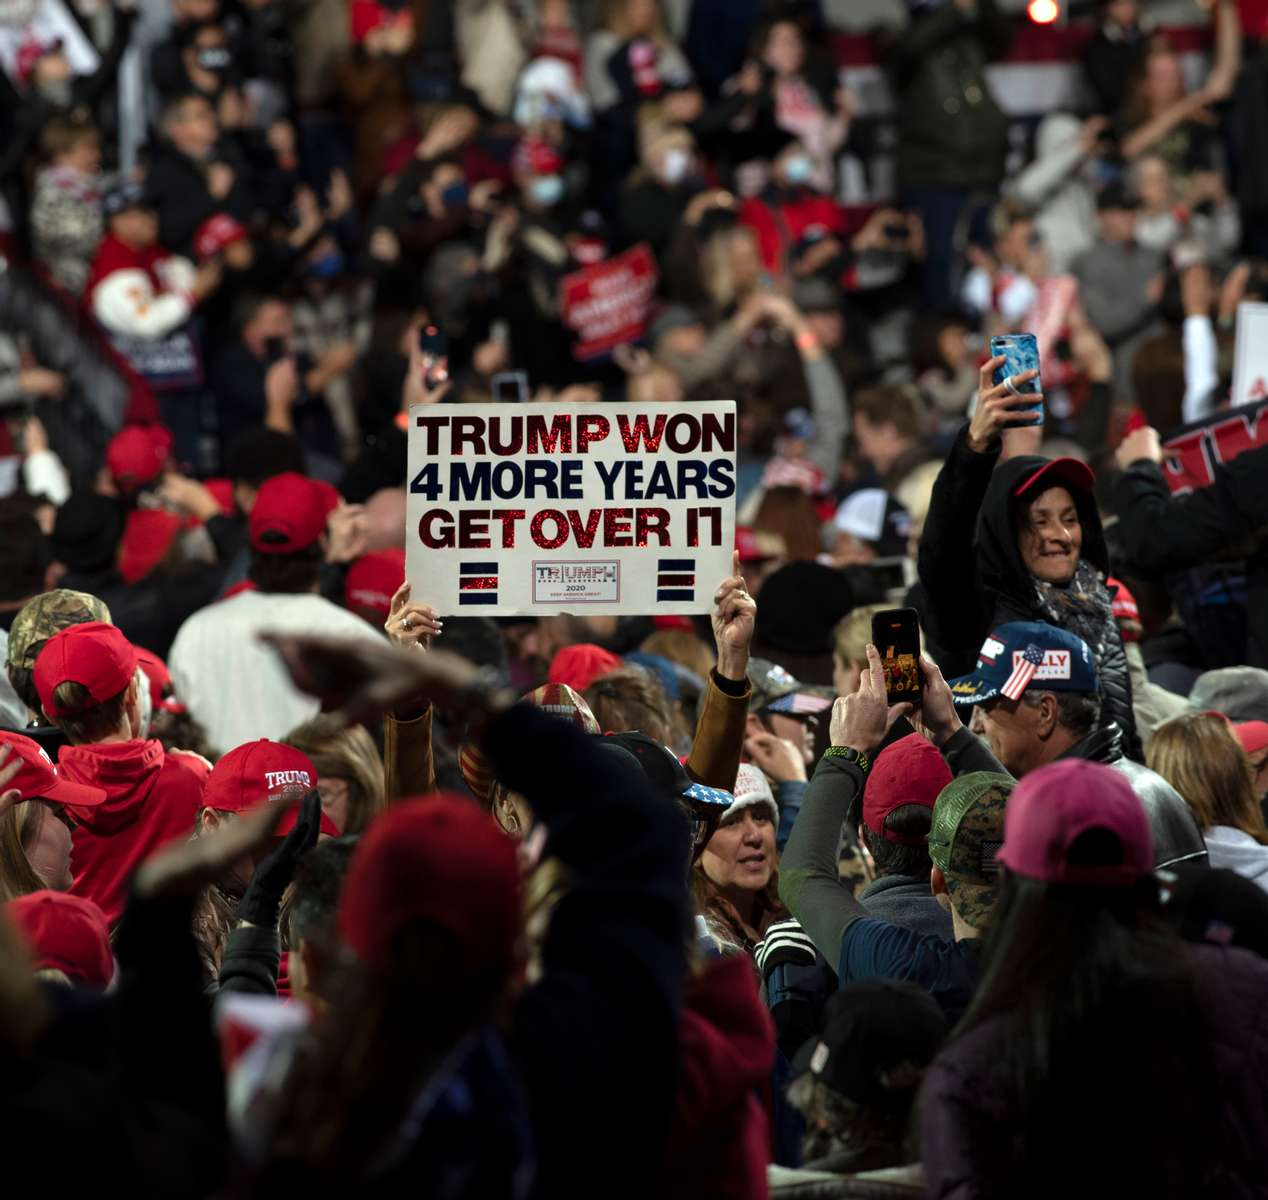 Thousands of Trump supporters converged on small town for Georgia Victory Rally to show support for President Donald Trump and two Republican incumbent U.S. senators Kelly Loeffler and David Perdue, who face democratic challengers in special run run-off election January 5, 2021. The election could decide control of the U.S. Senate.Pictured: Crowd erupts in cheers at end of rally, holding on to hope of a second term for President Trump despite election results